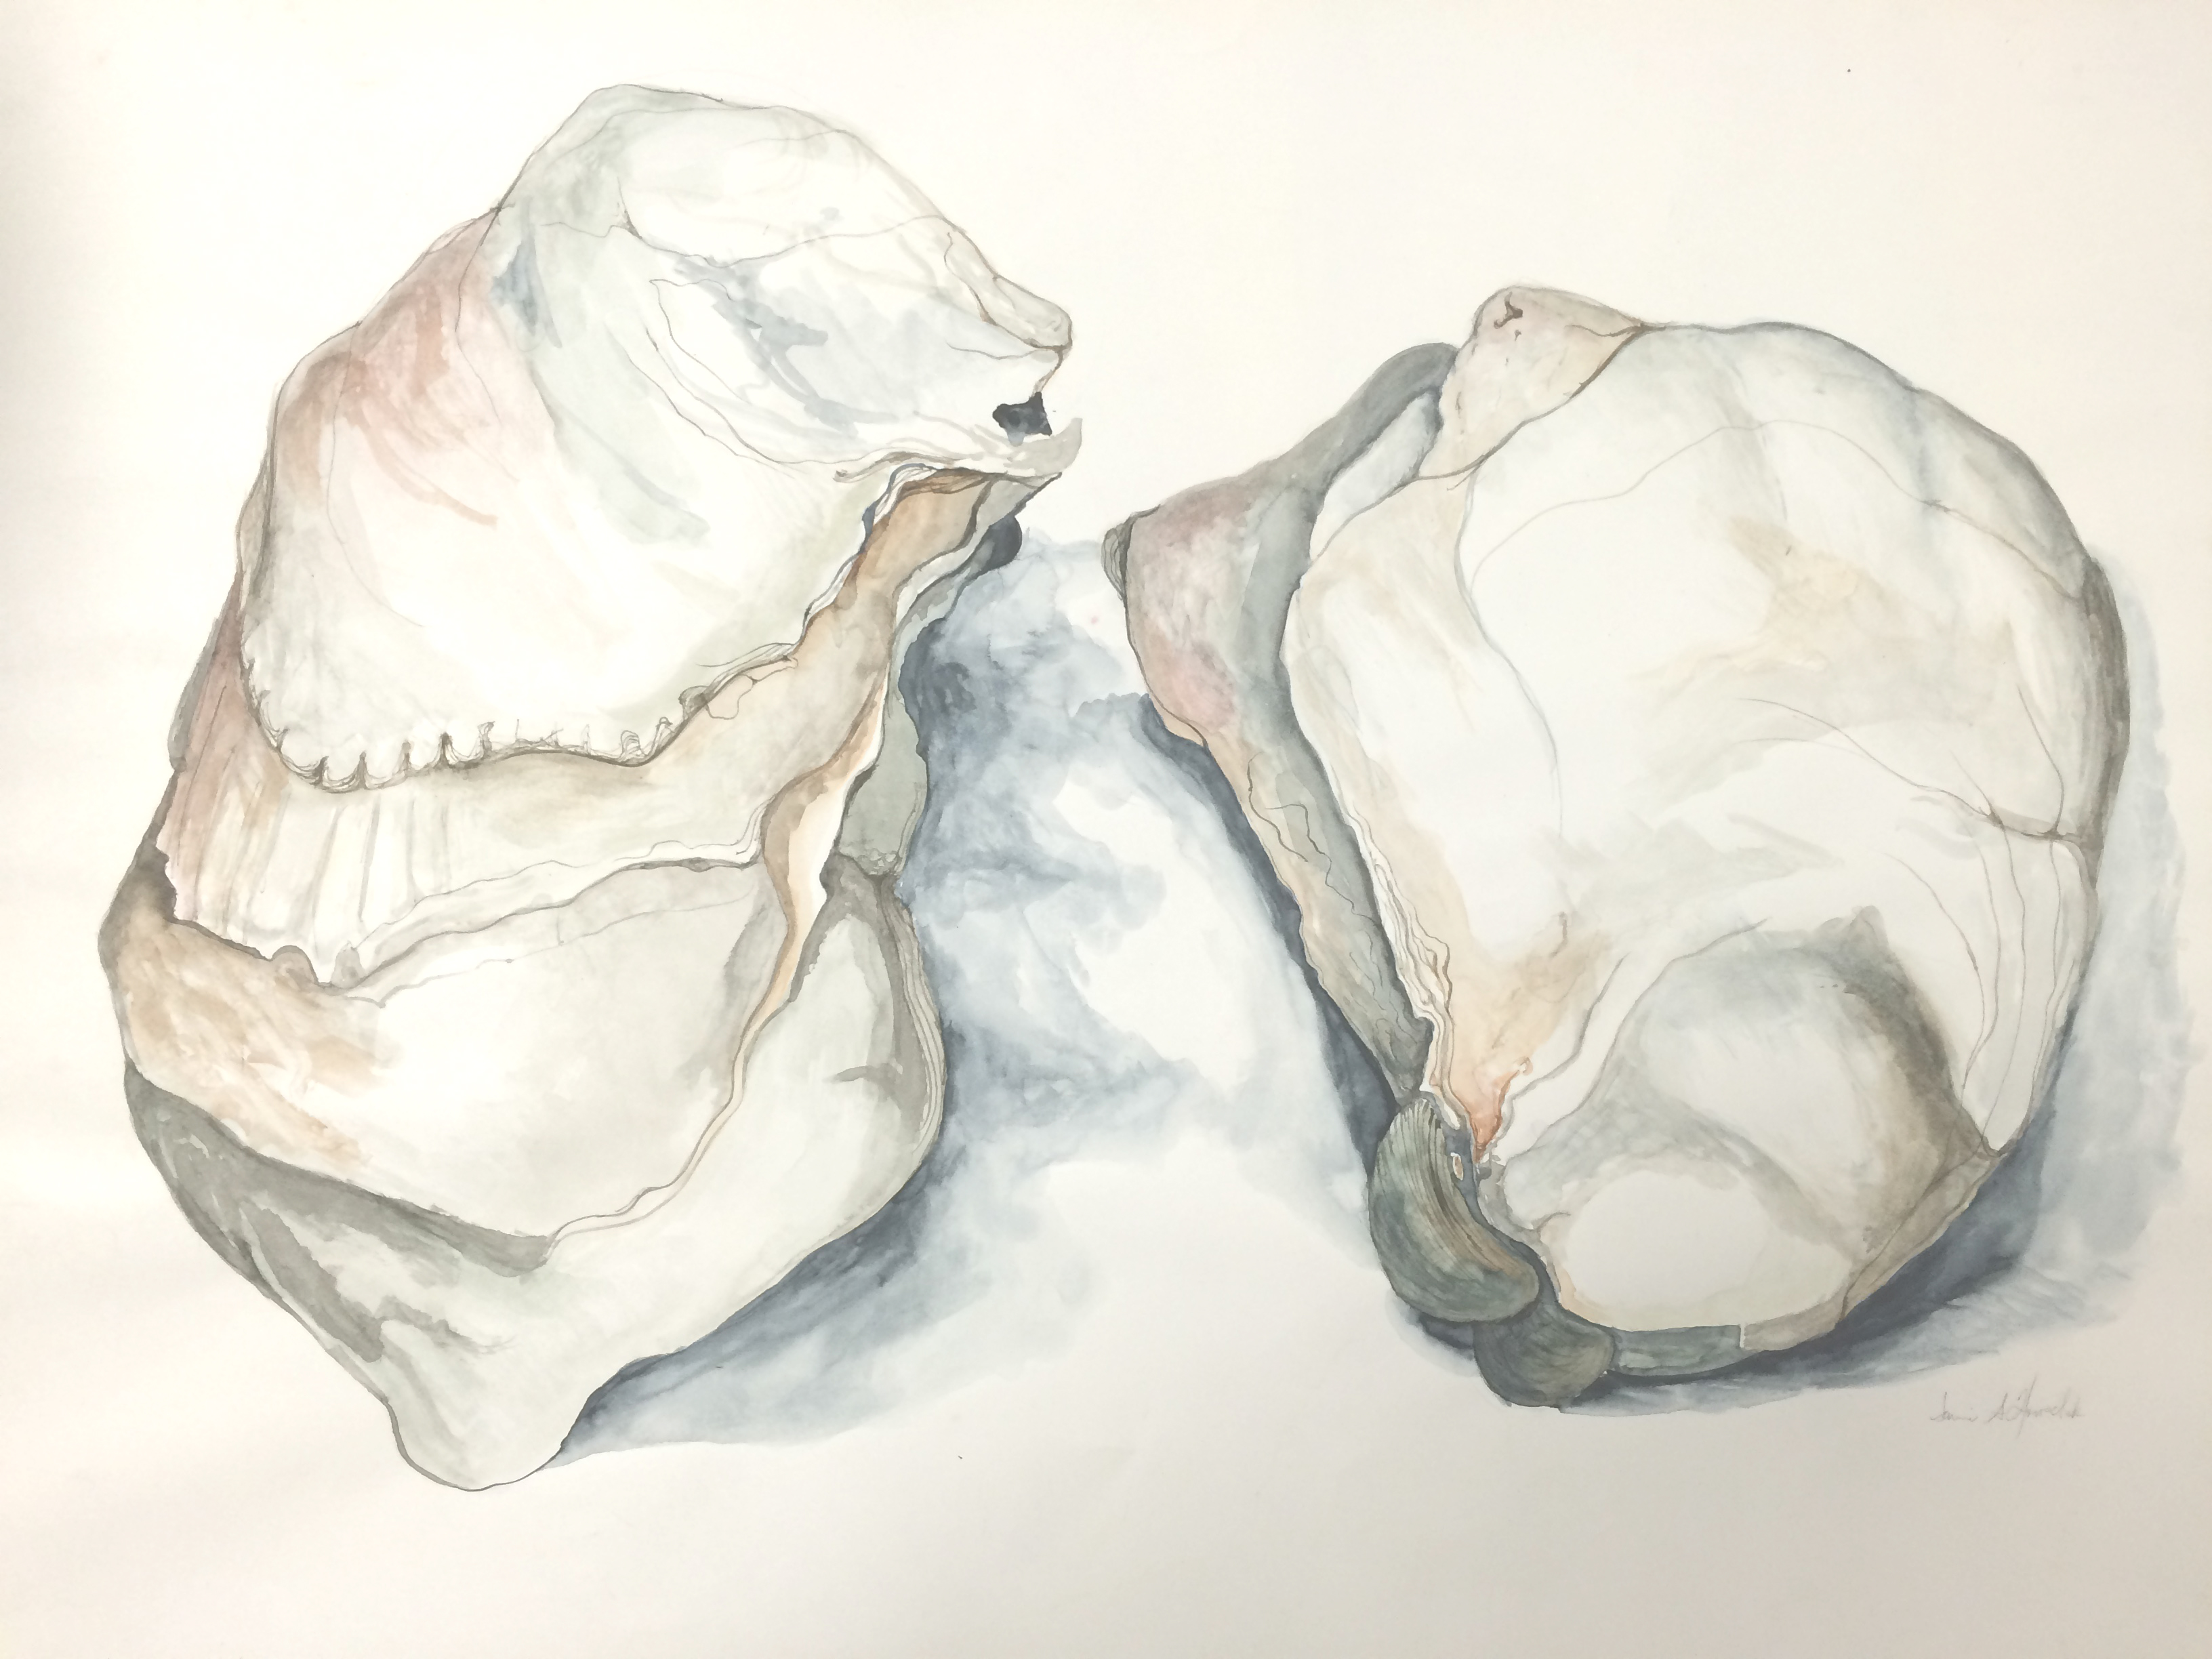 oyster shells watercolor 18 inches by 24 inches